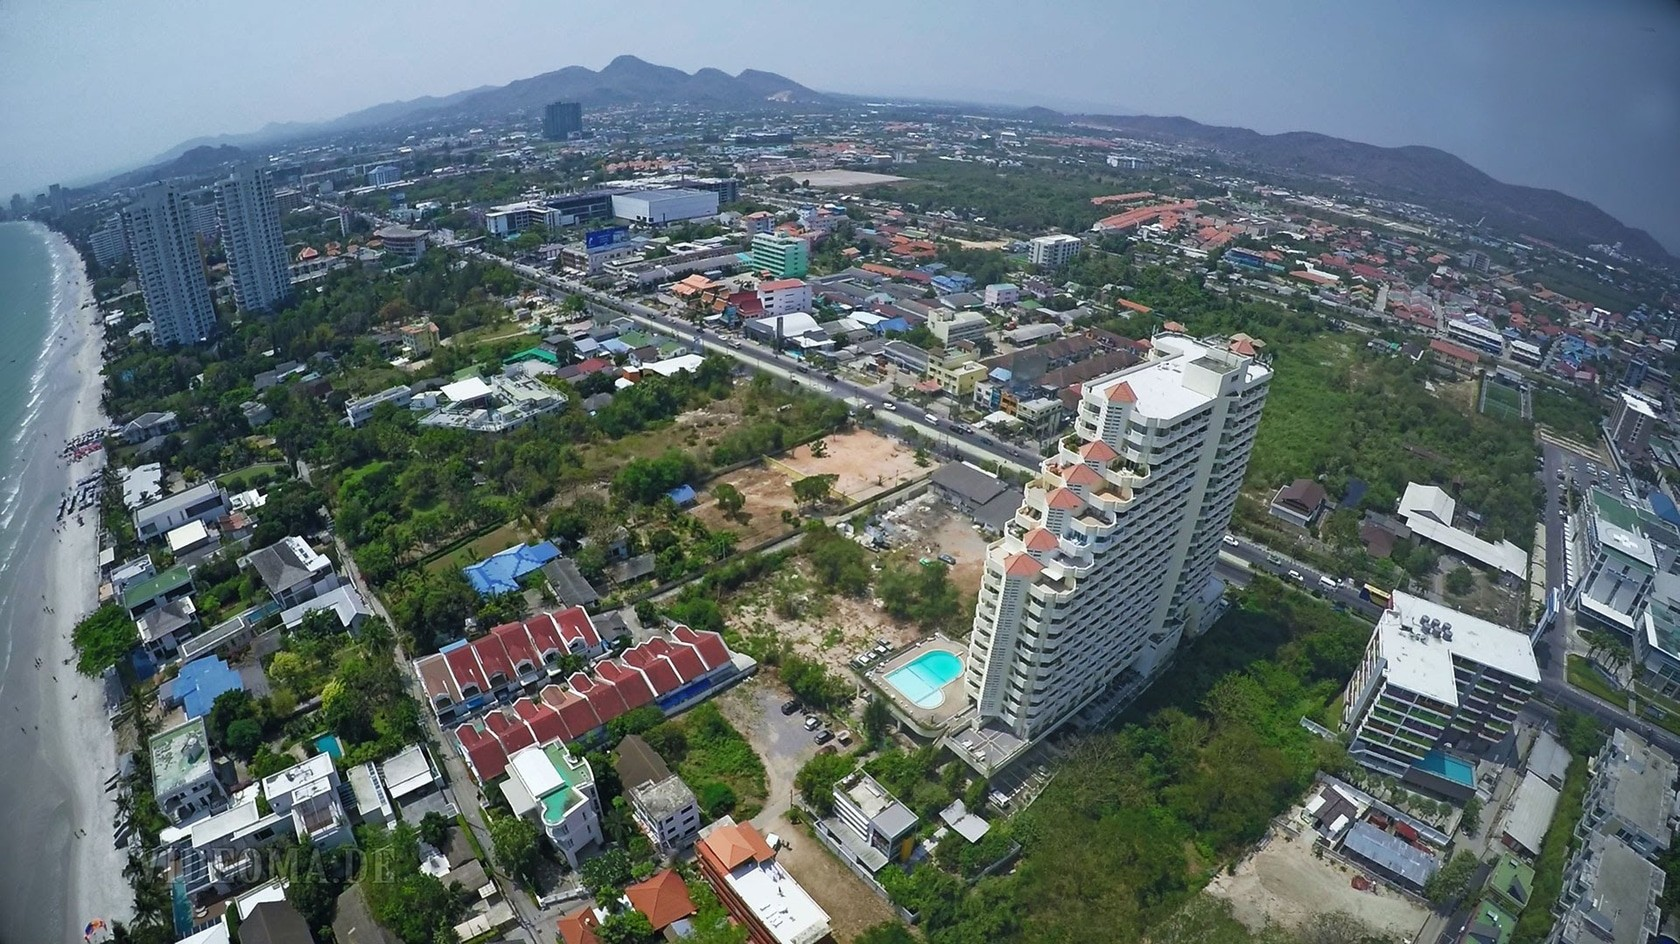 10 Hua Hin hotels face closure over Hotel Act infringements | The Thaiger